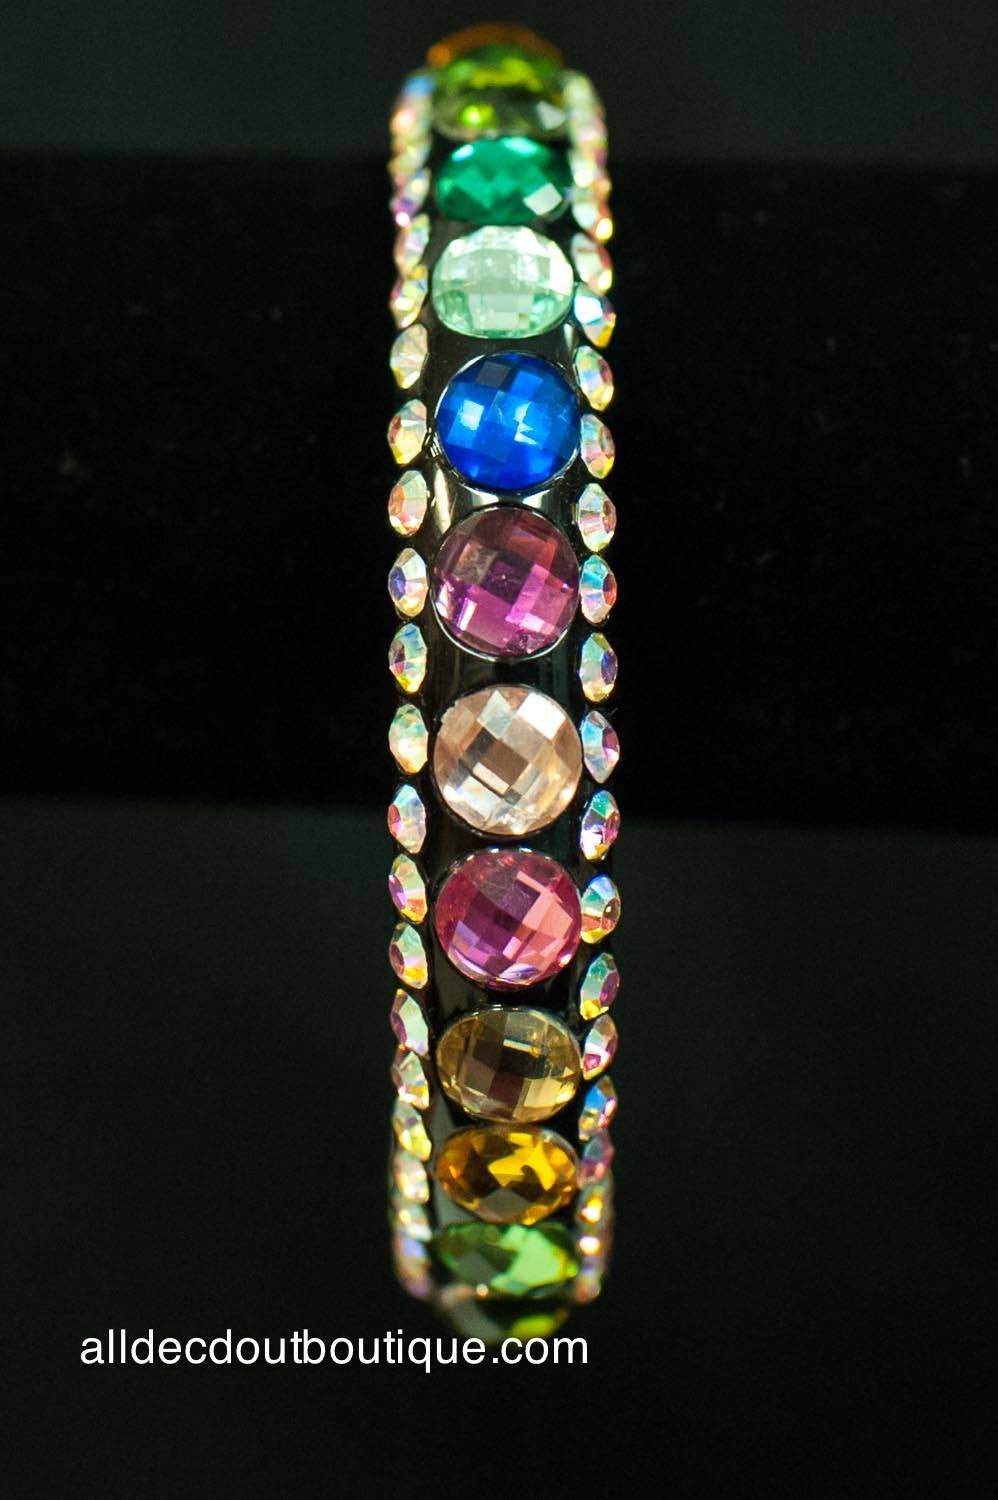 ADO | Thin Black Bangle Bracelet with Multi-Color Stones